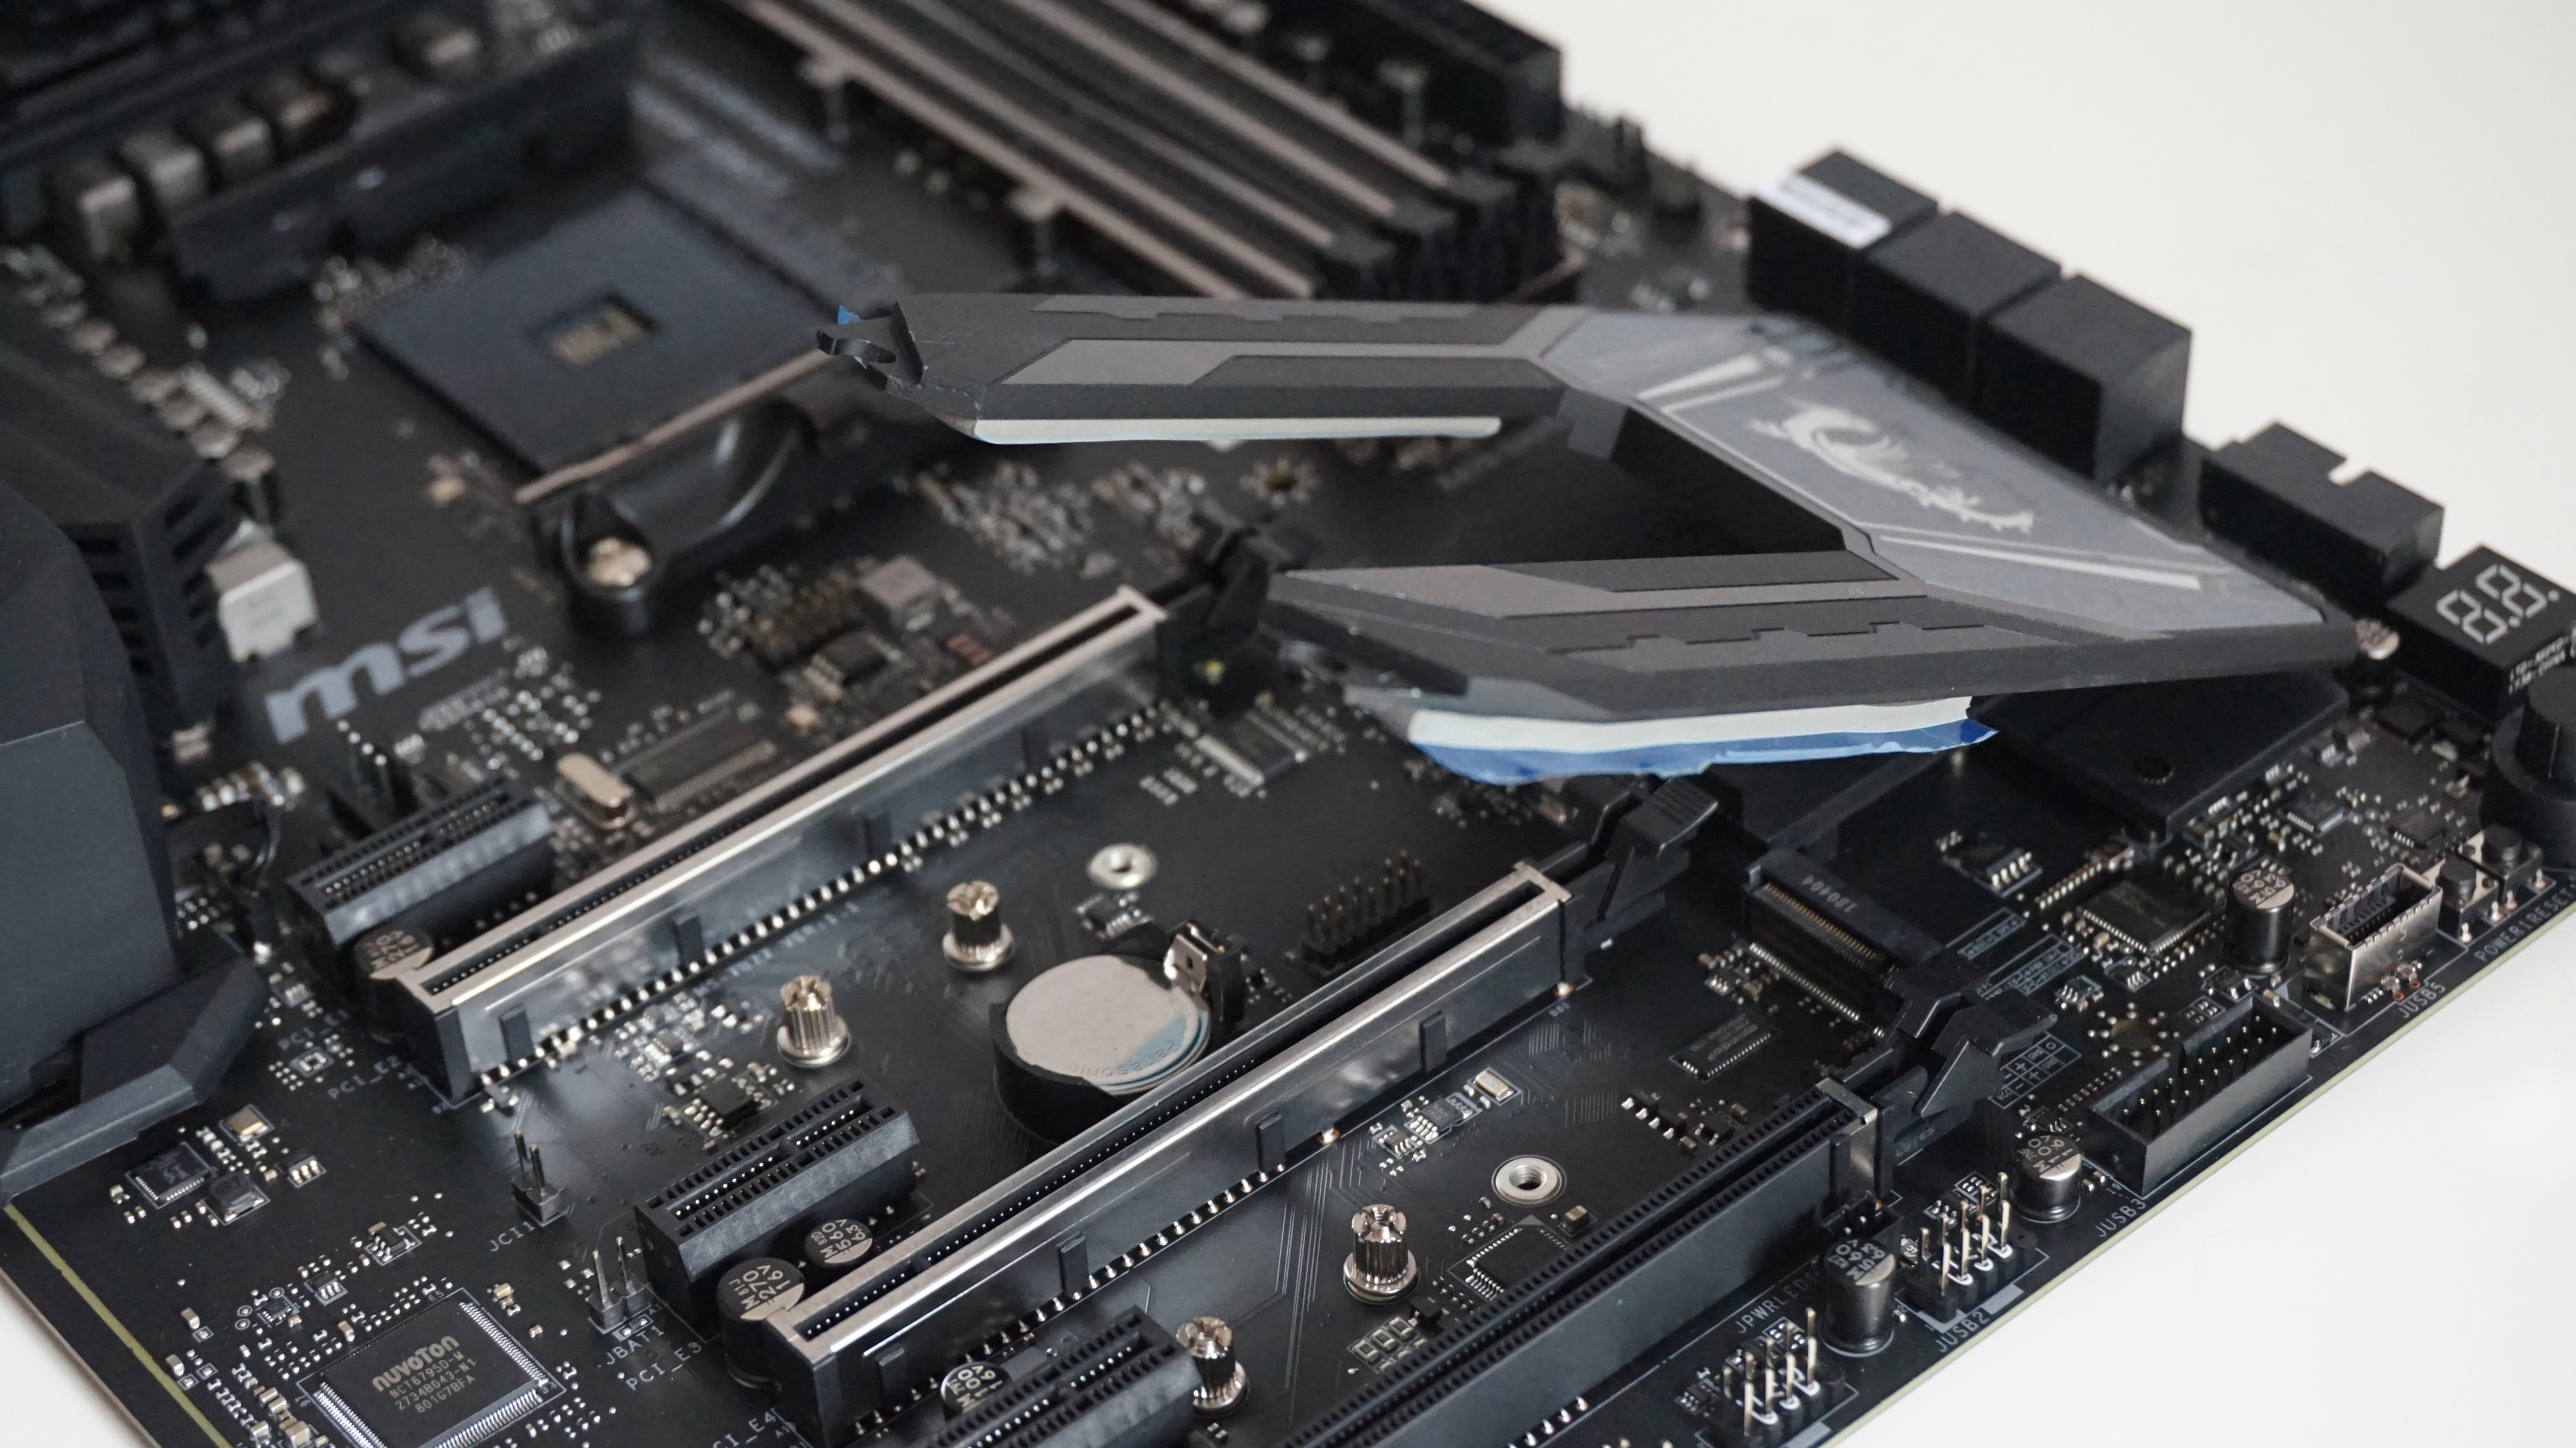 MSI X470 Gaming M7 AC review: Easy overclocking for Ryzen+ | Rock